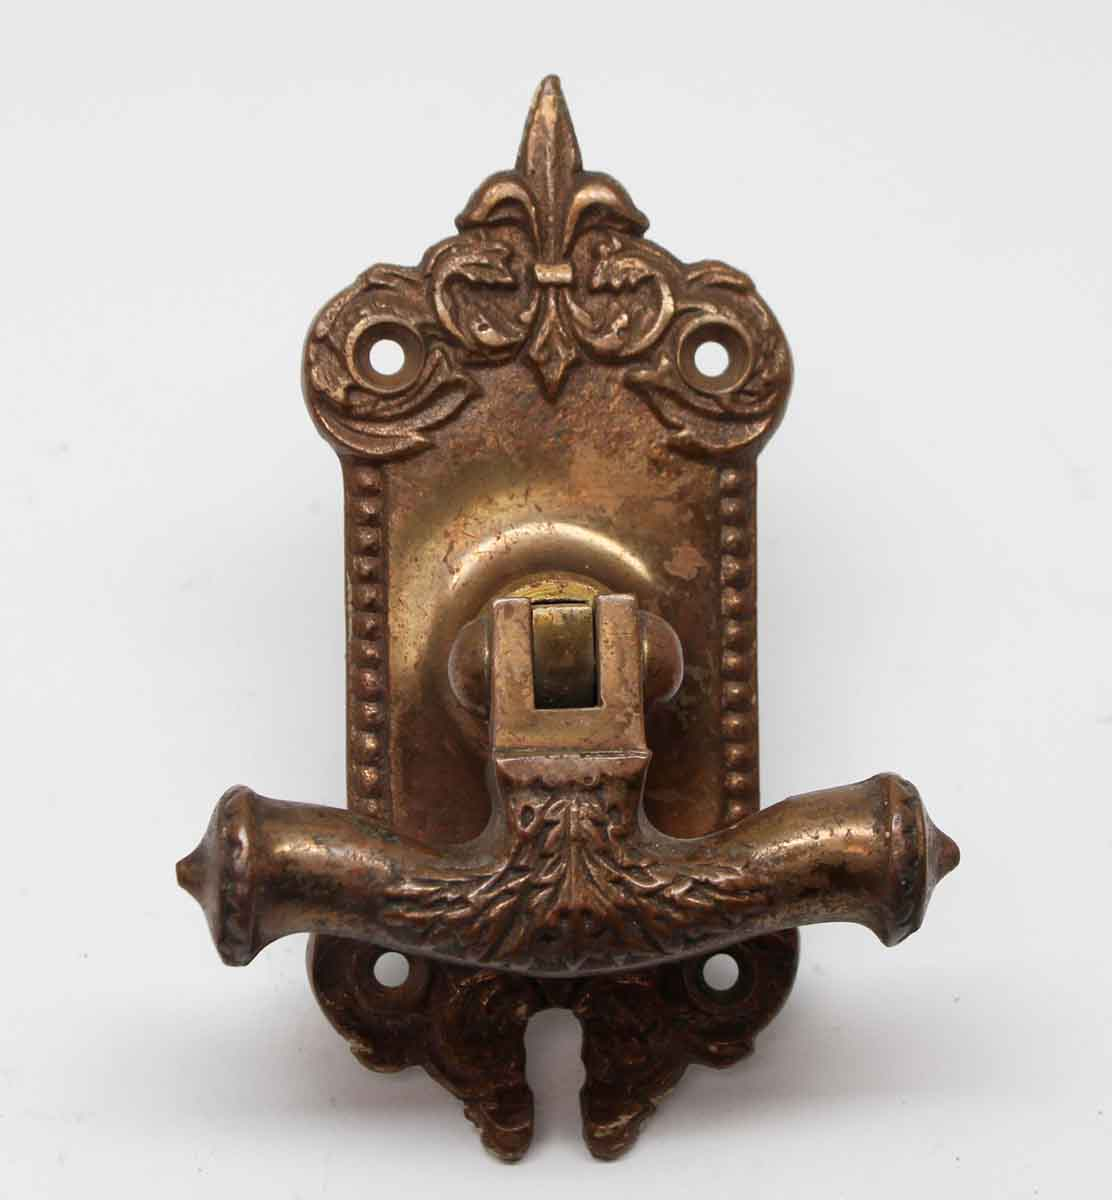 Cabinet & Furniture Pulls - Antique Bronze Cabinet Pull with Back Plate - Antique Bronze Cabinet Pull With Back Plate Olde Good Things